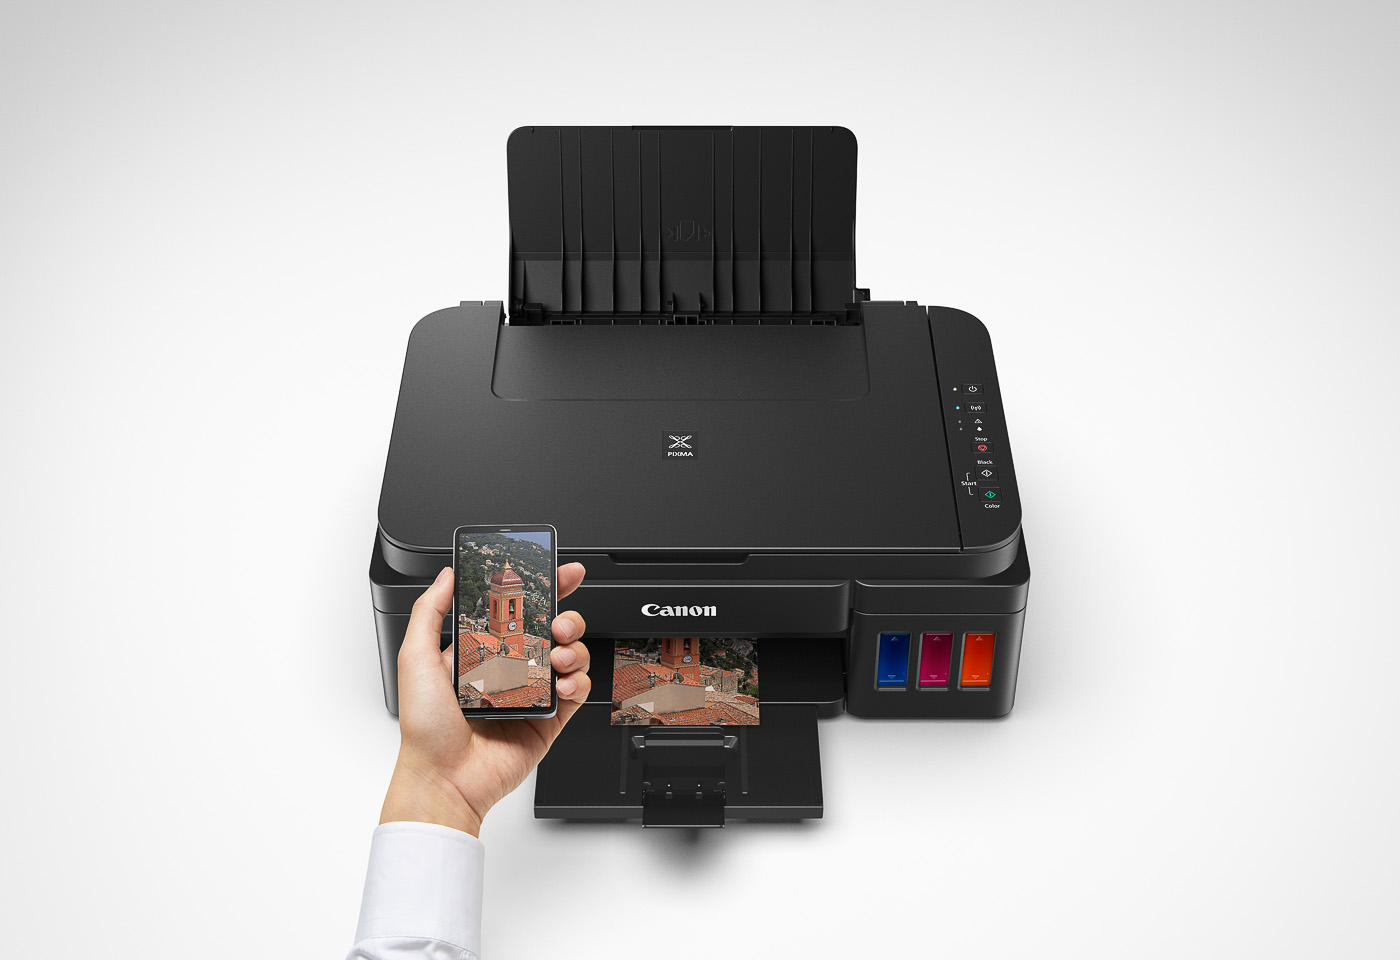 pixma mg3600 printing from a mobile device